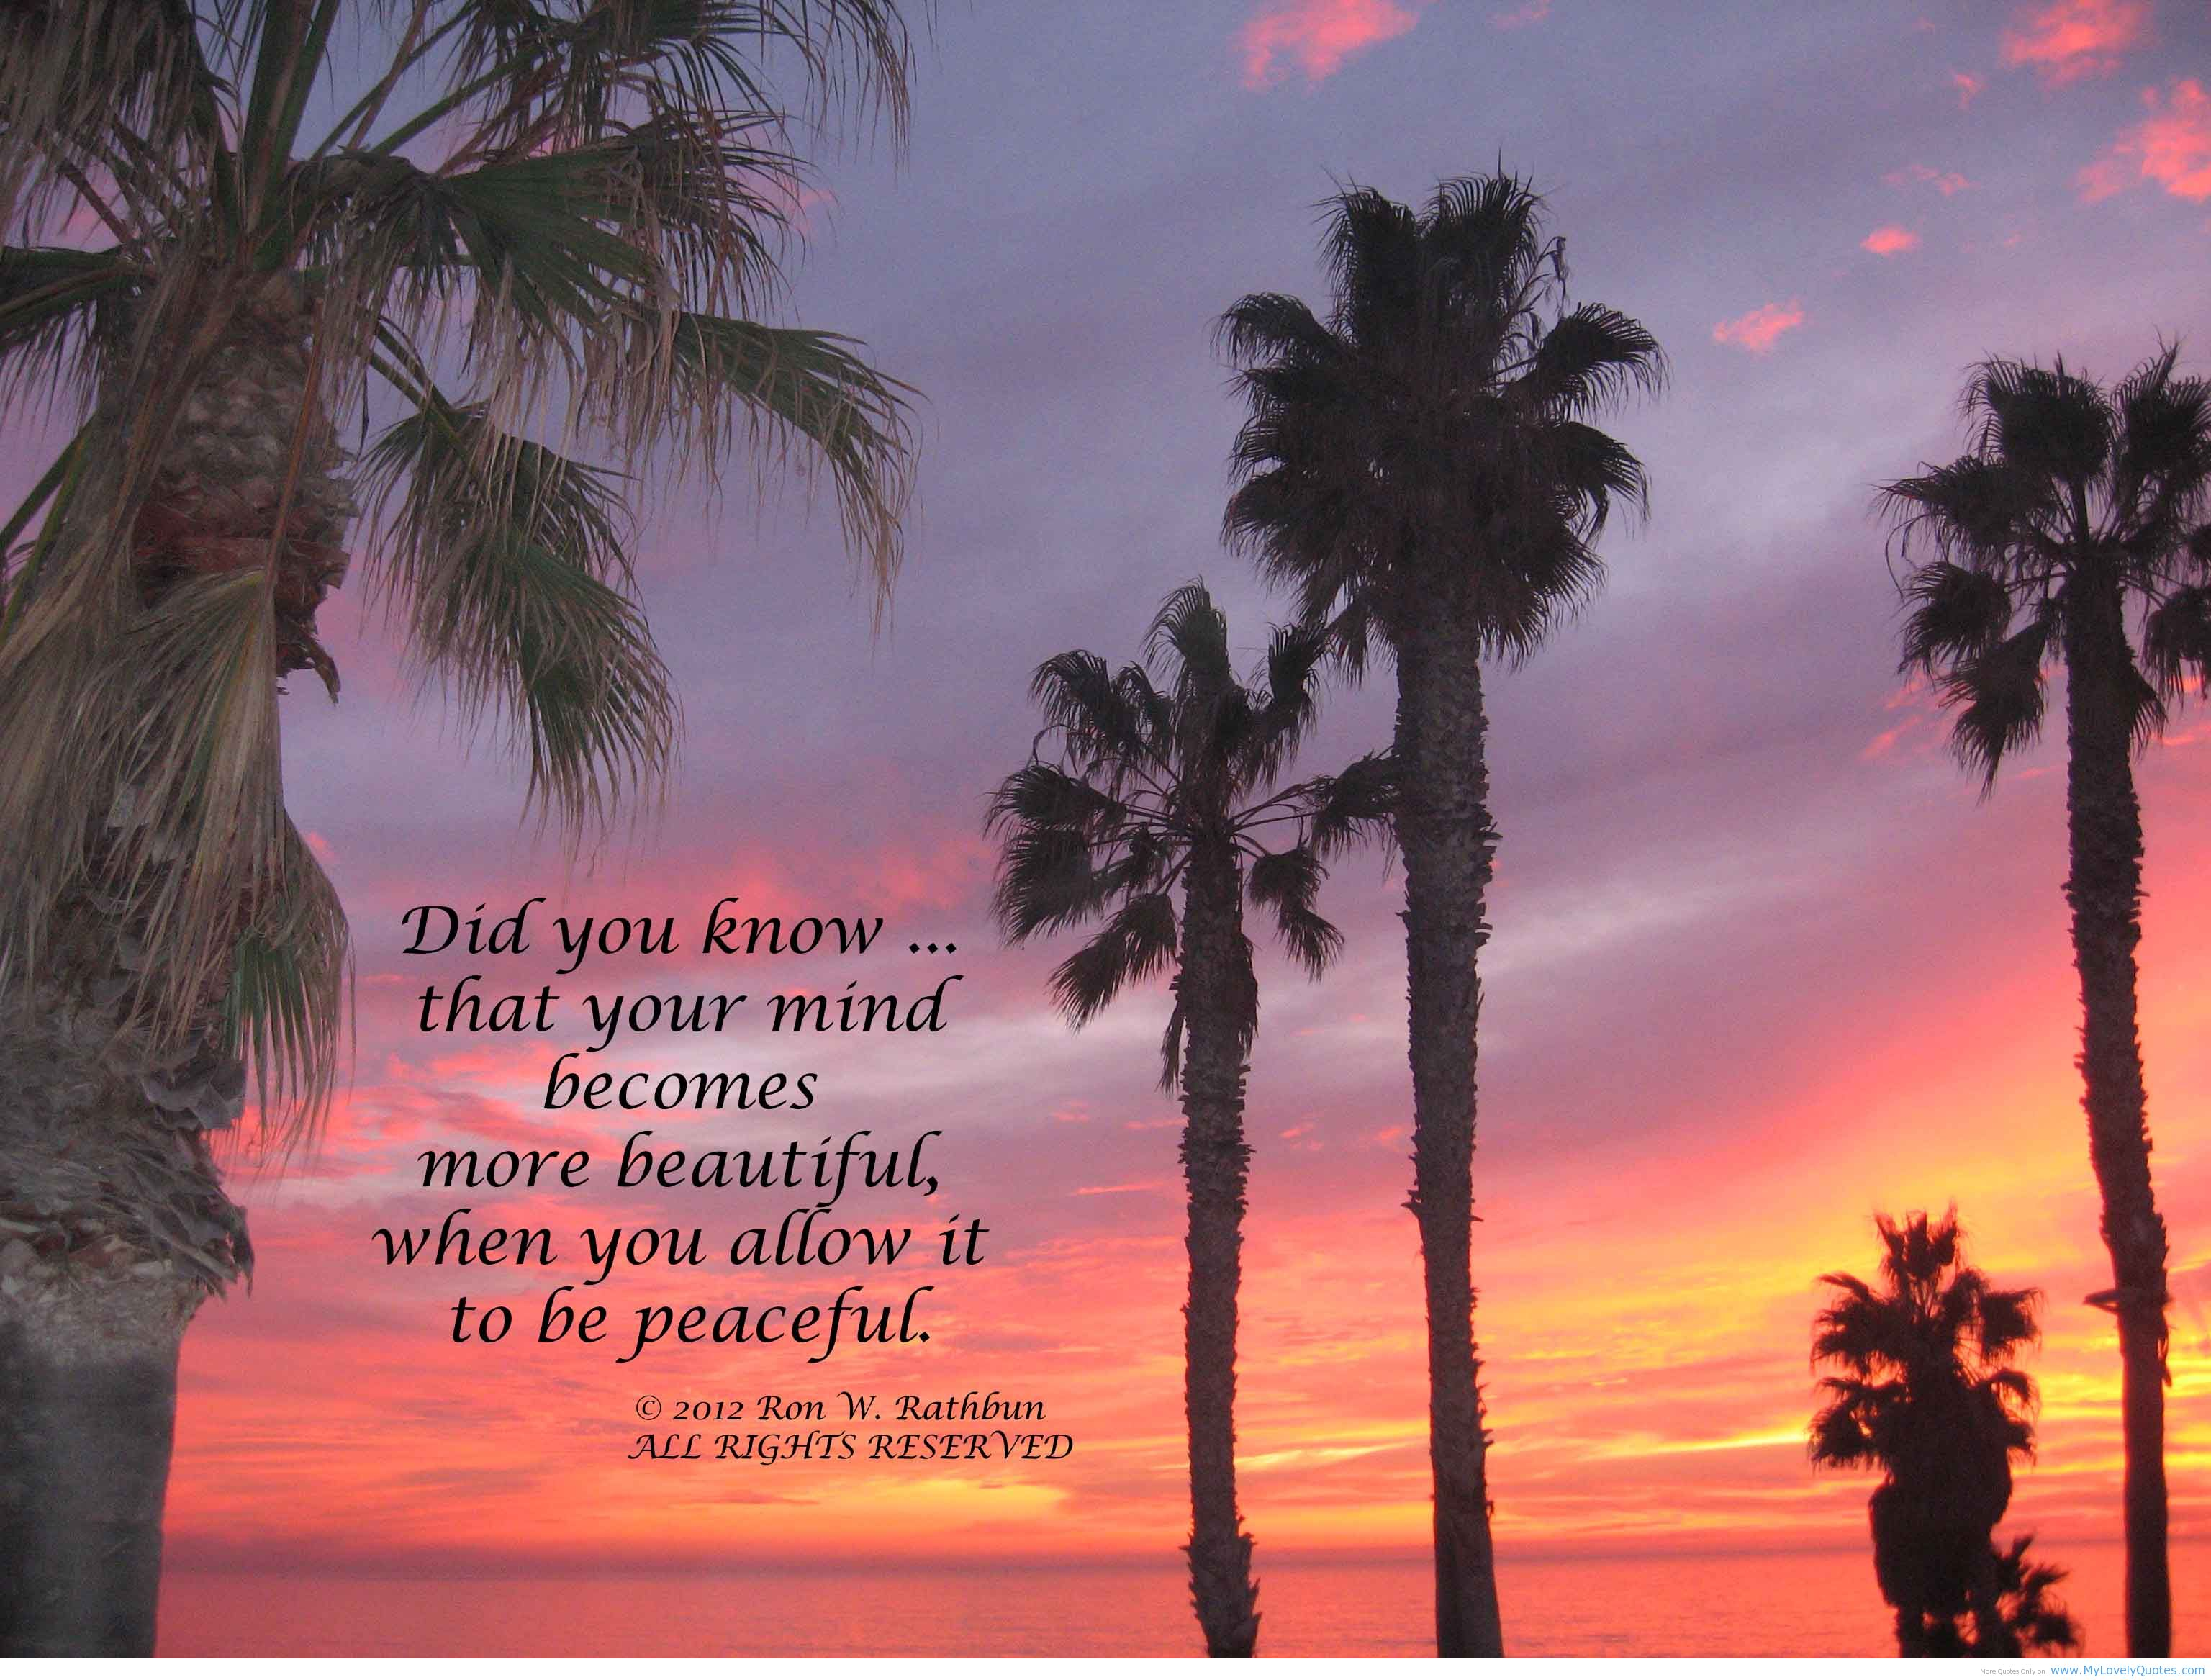 """ Did You Know That Your Mind Becomes More Beautiful When You Allow It To Be Peaceful "" - Ron W. Rathbun"